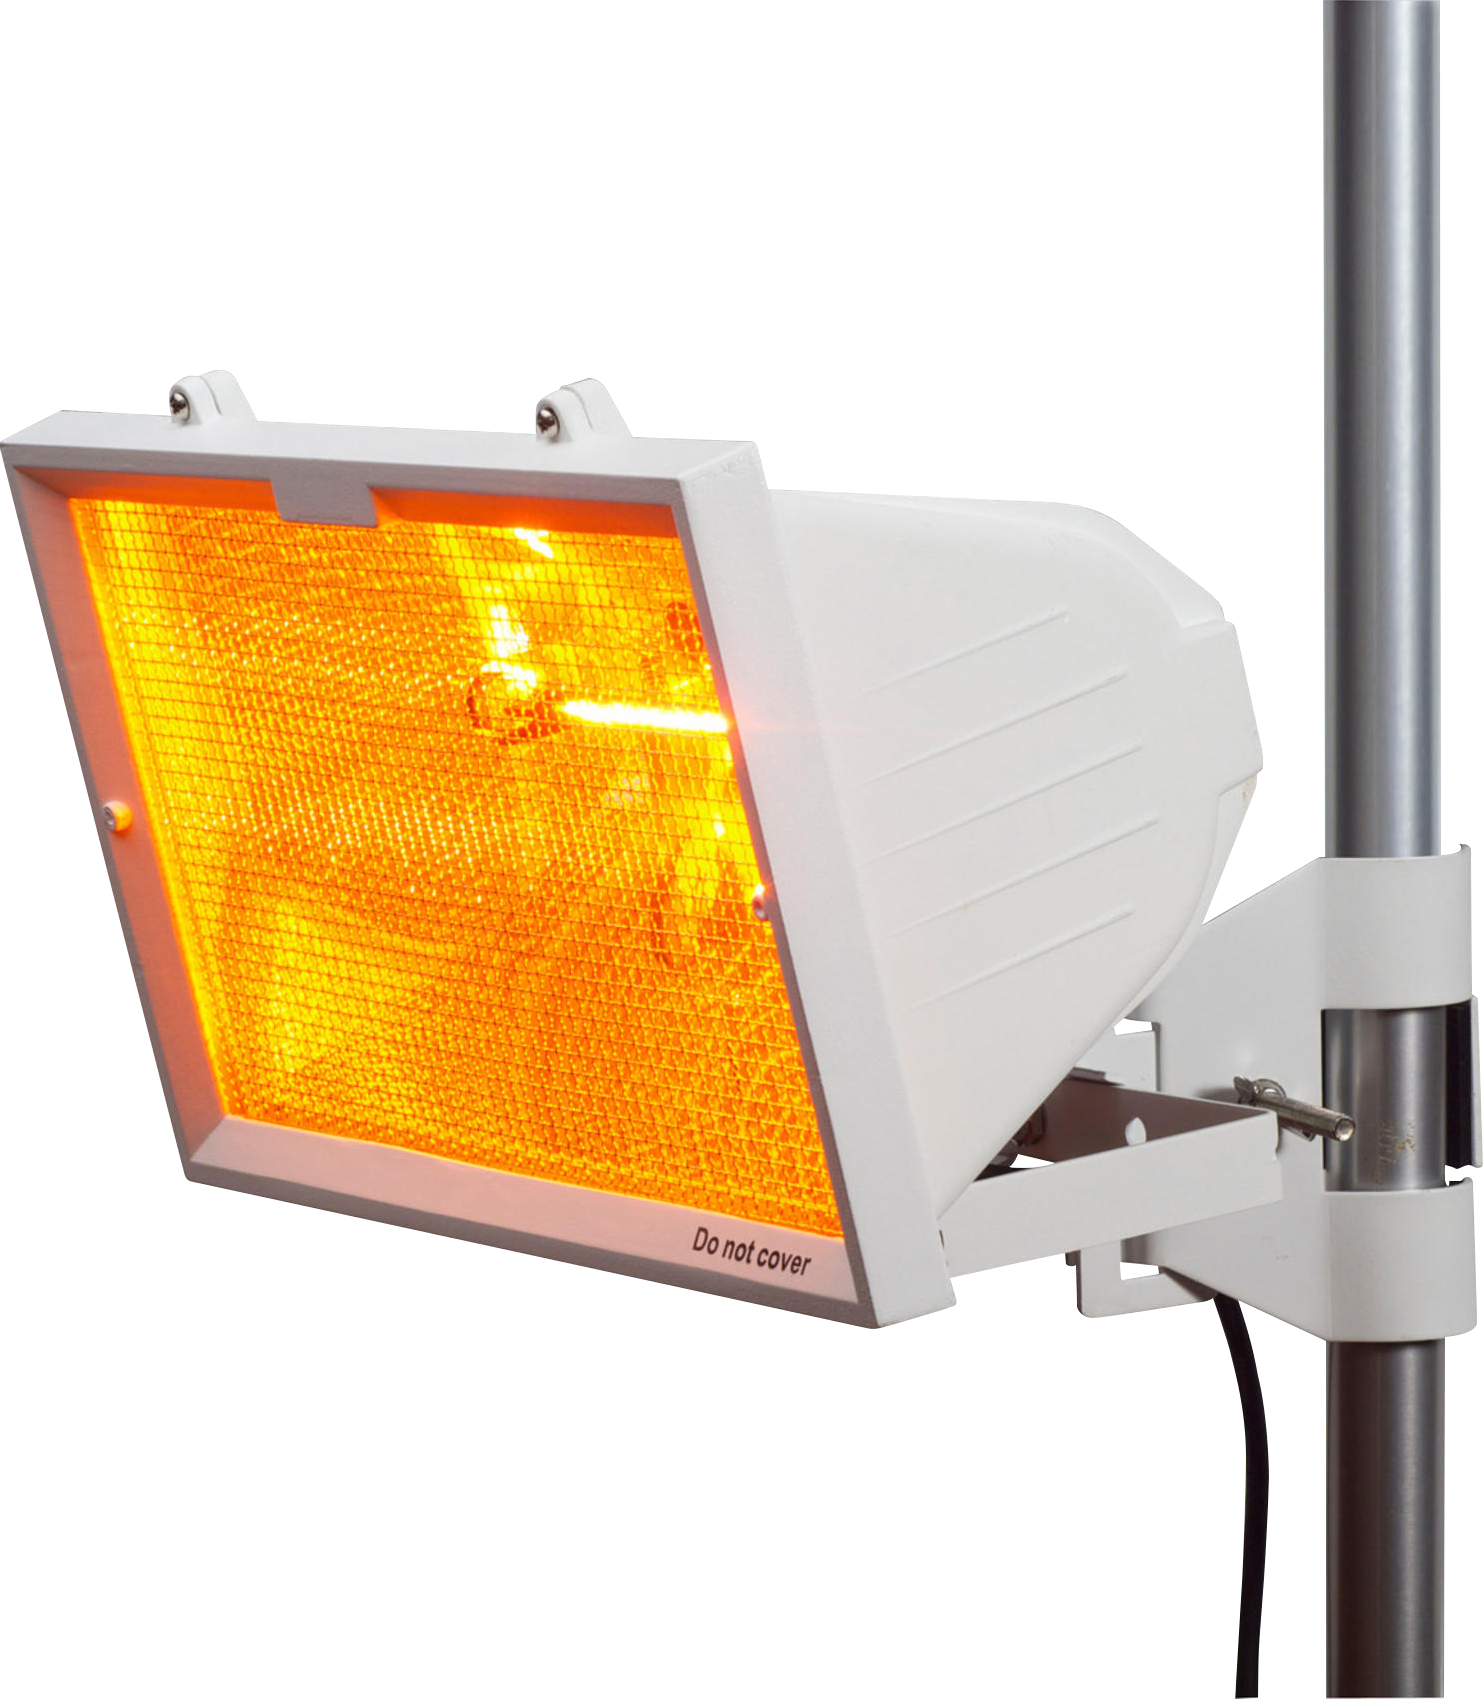 IP24 1300W Outdoor Infrared Heater with Mesh Grill and RS7 1300W Tube White